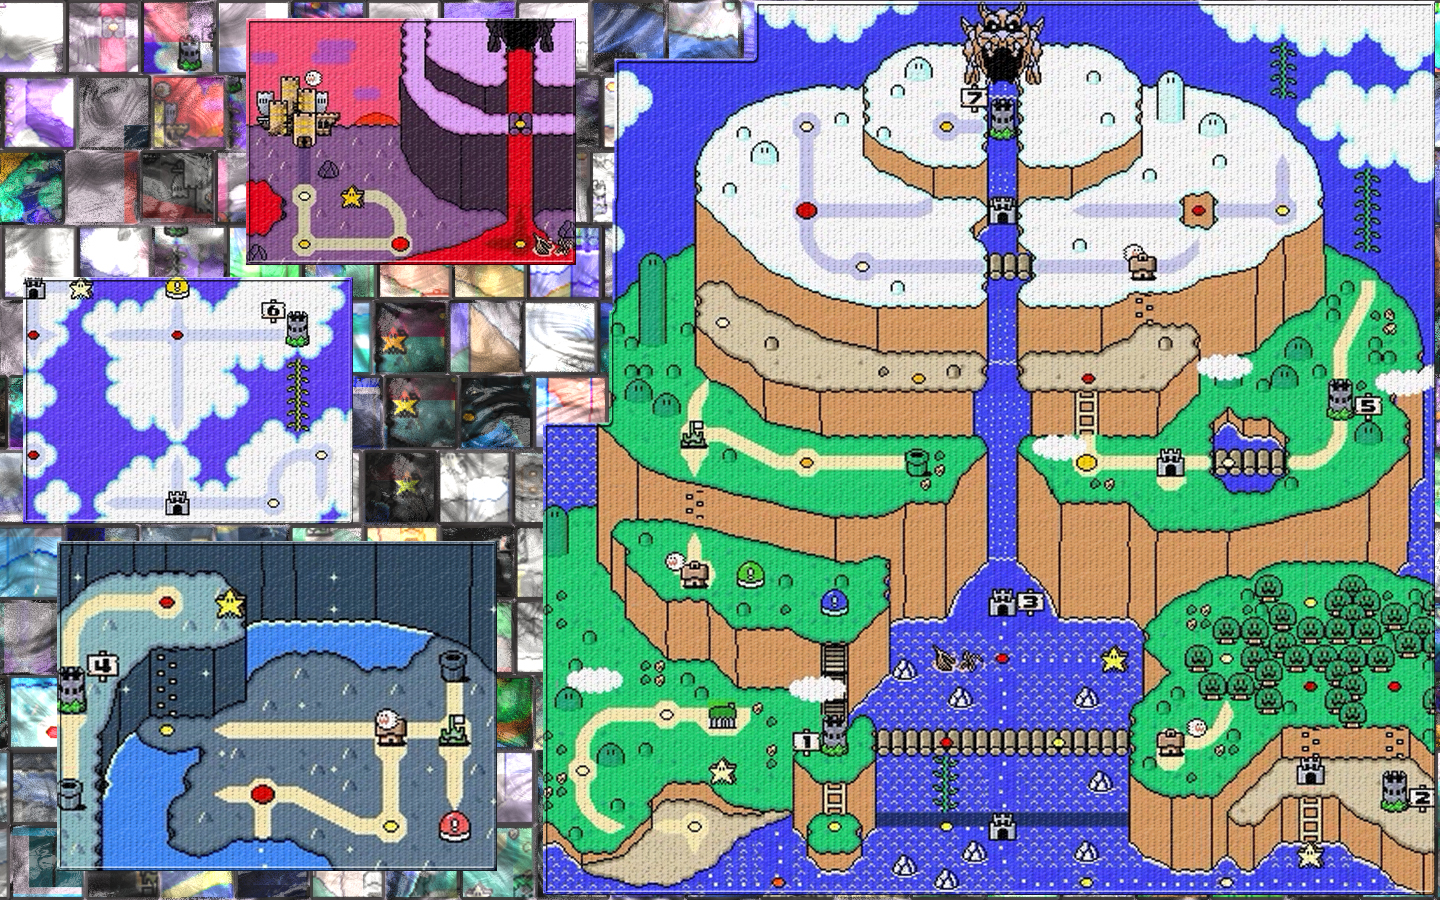 Brutal mario world maps by jobexi on deviantart brutal mario world maps by jobexi gumiabroncs Images